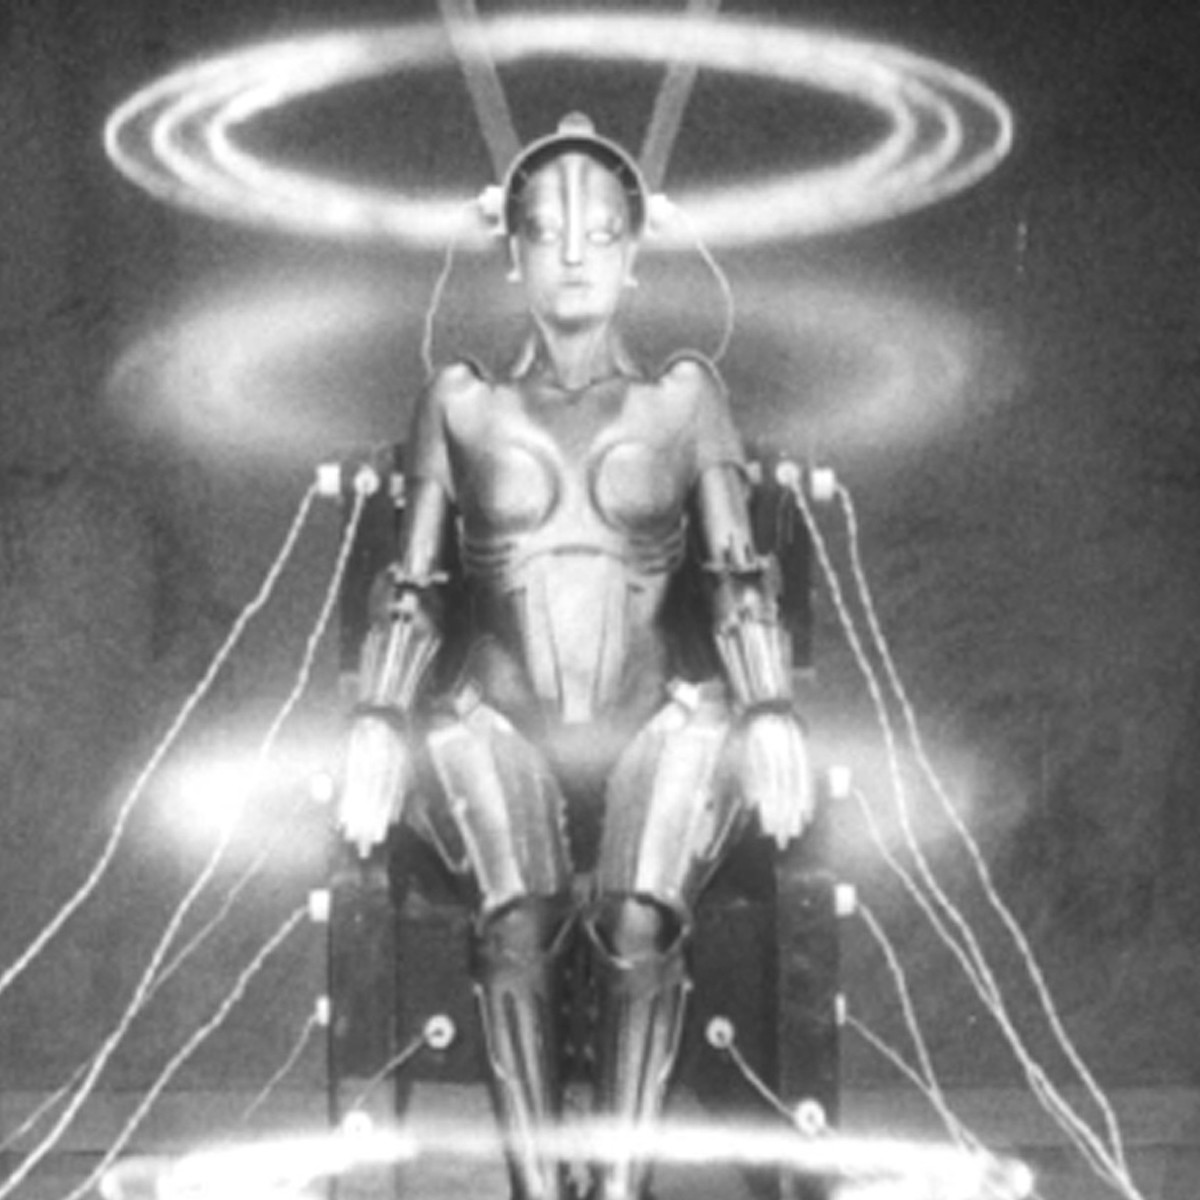 Metropolis 1927 film directed by Fritz Lang German expressionistic science fiction genre